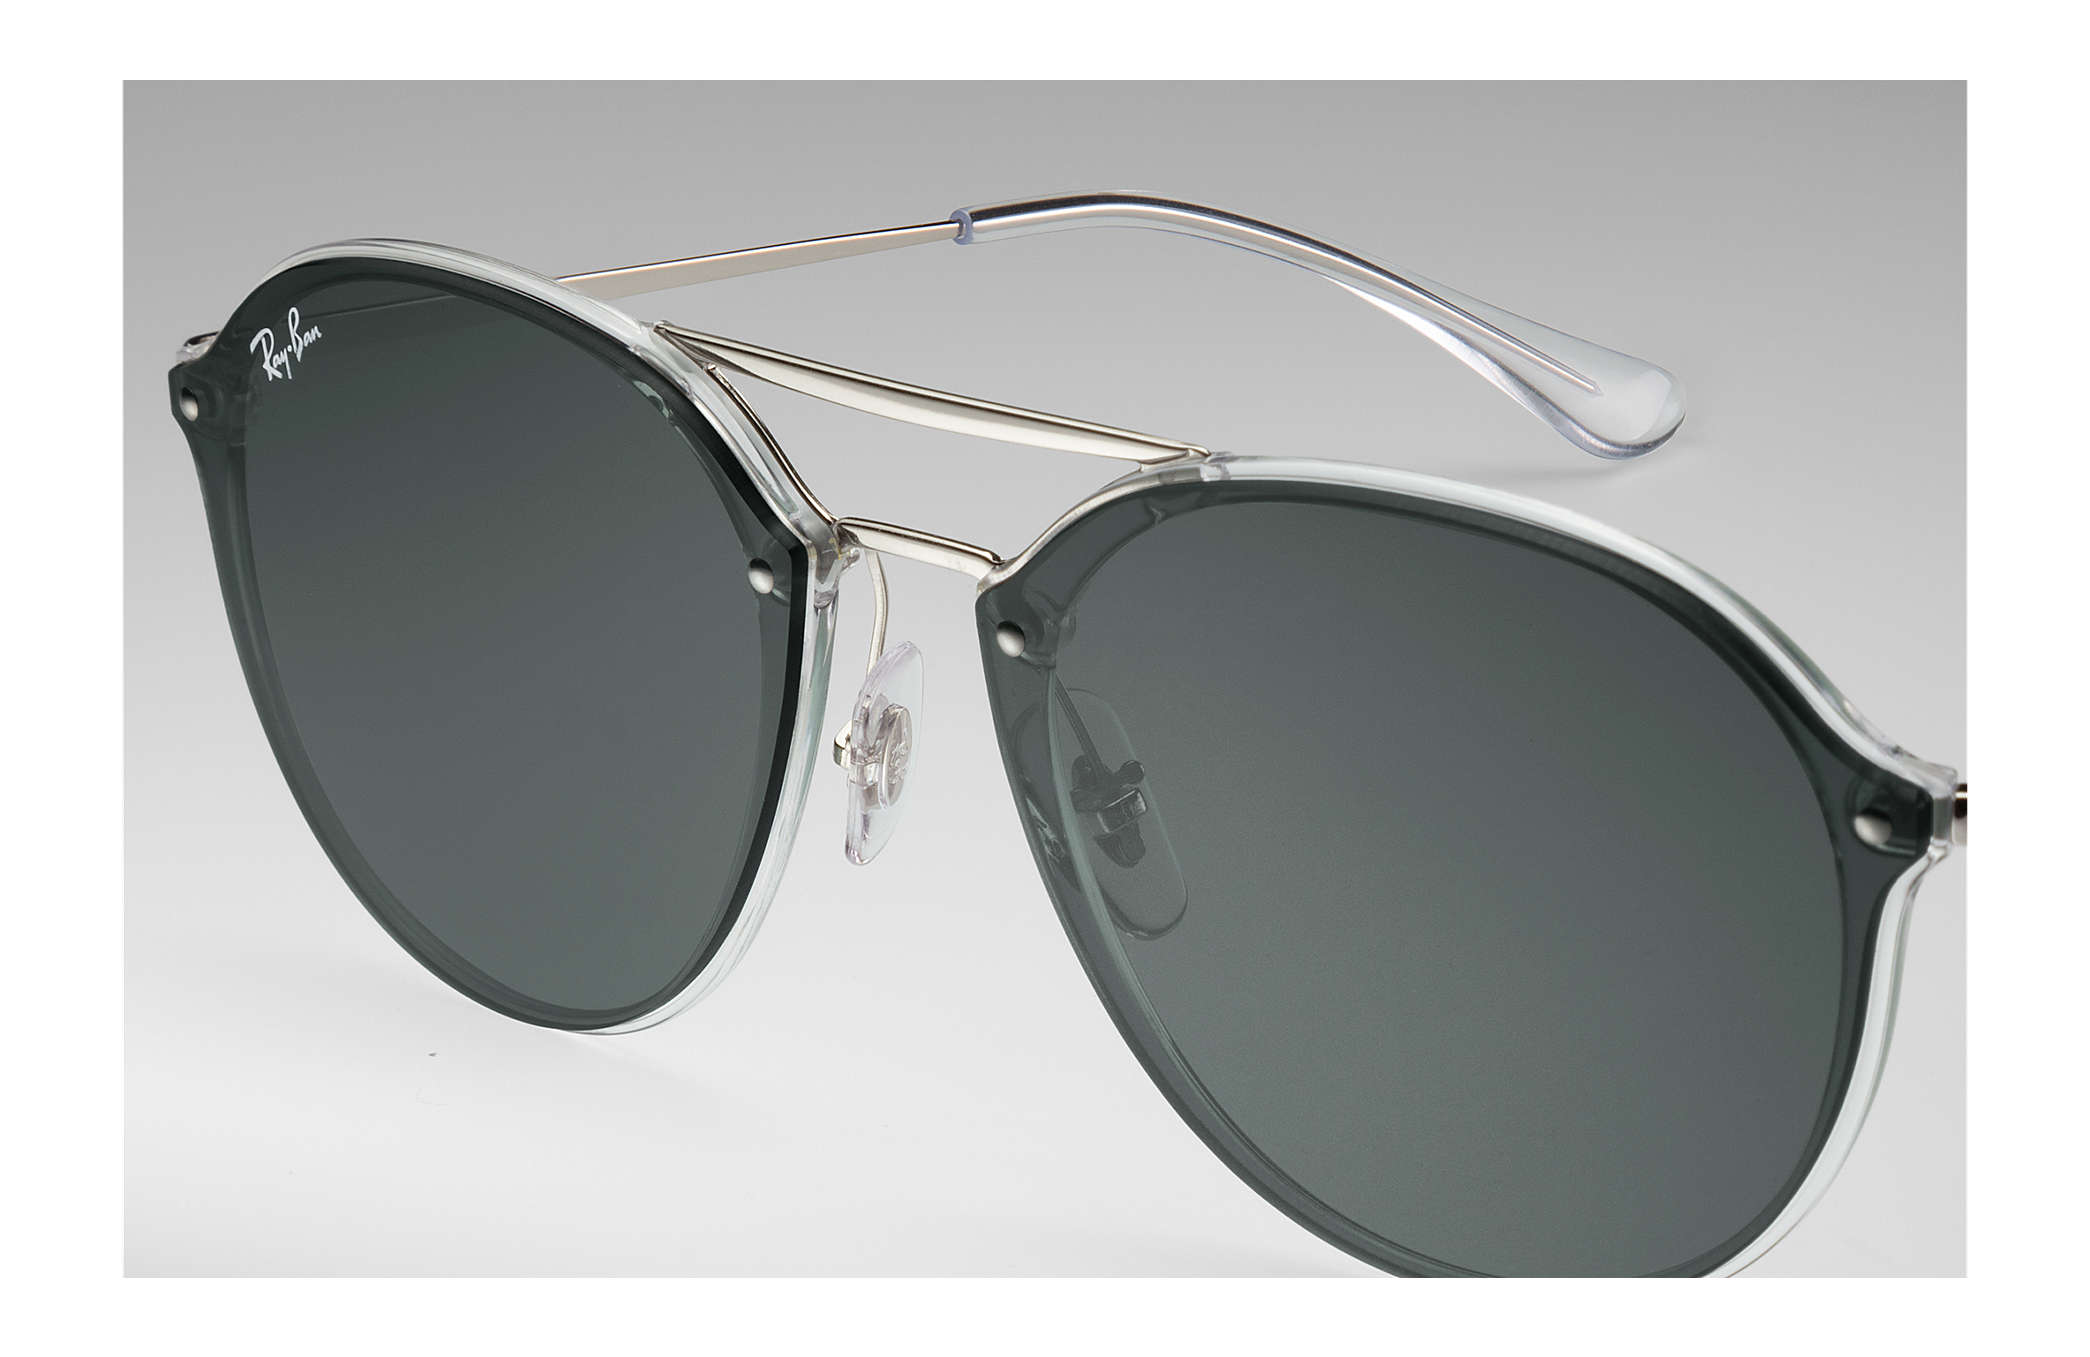 dfc03b6ae4a82 Ray-Ban Blaze Double Bridge RB4292N Transparente - Injected - Lentes ...